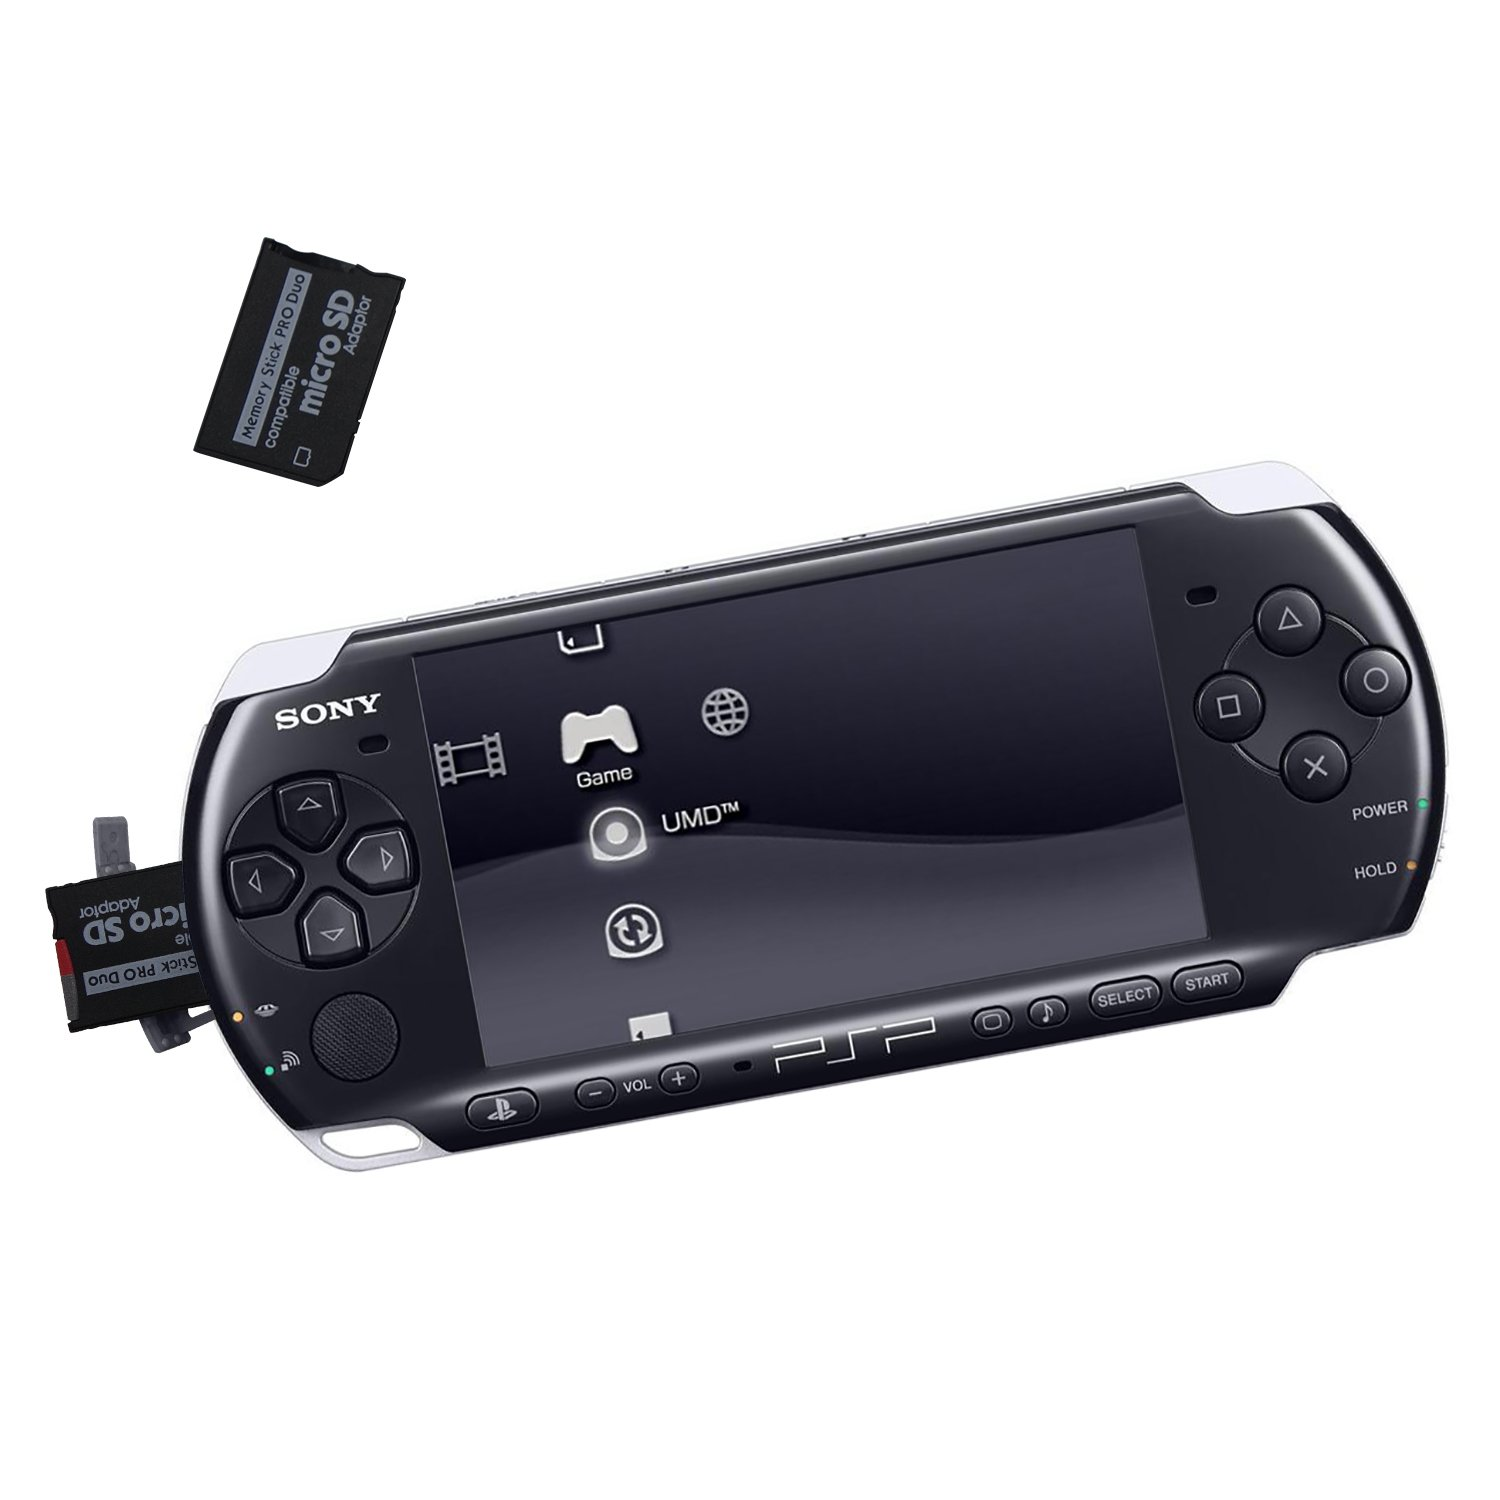 PSP Memory Stick Adapter, Funturbo Micro SD to Memory Stick PRO Duo MagicGate Card for Sony Playstation Portable, Camera, Handycam